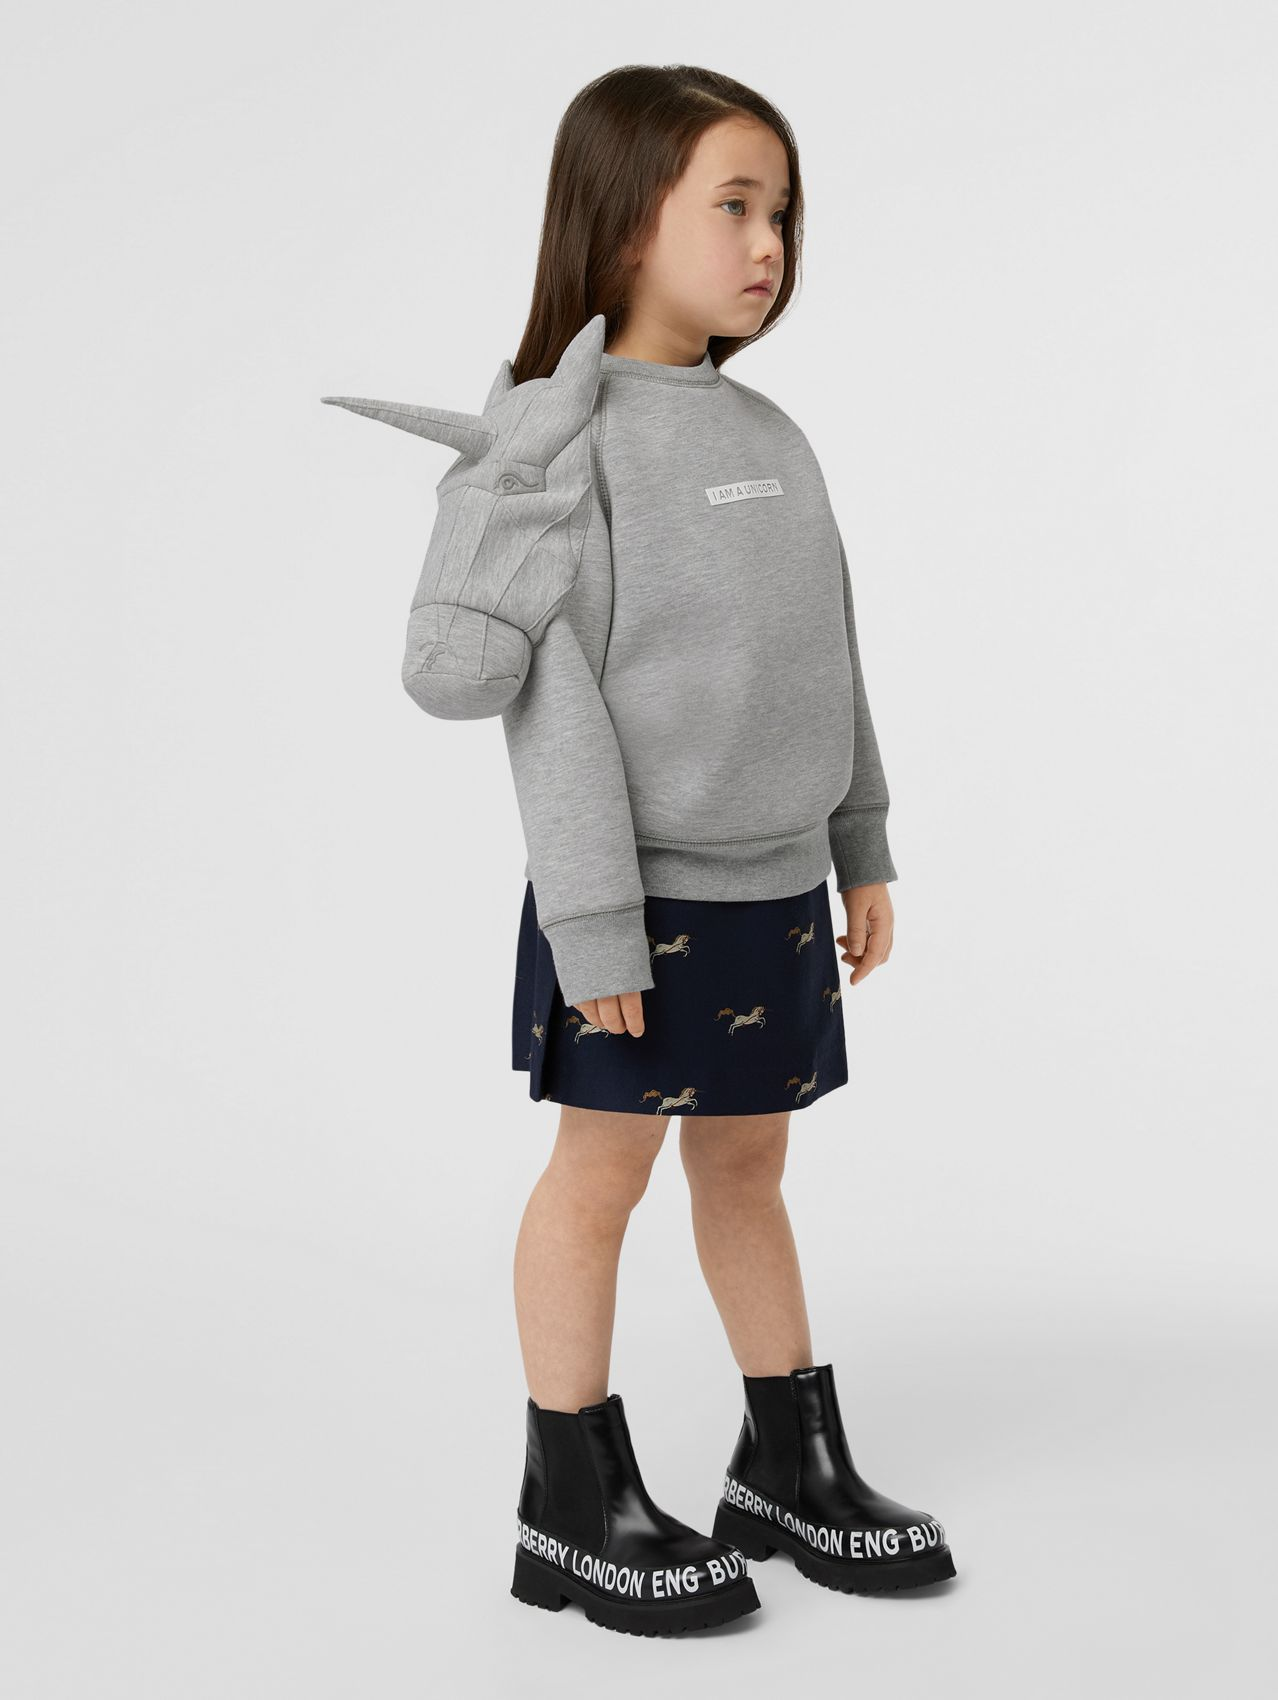 3D Unicorn Sweatshirt – Online Exclusive in Grey Melange